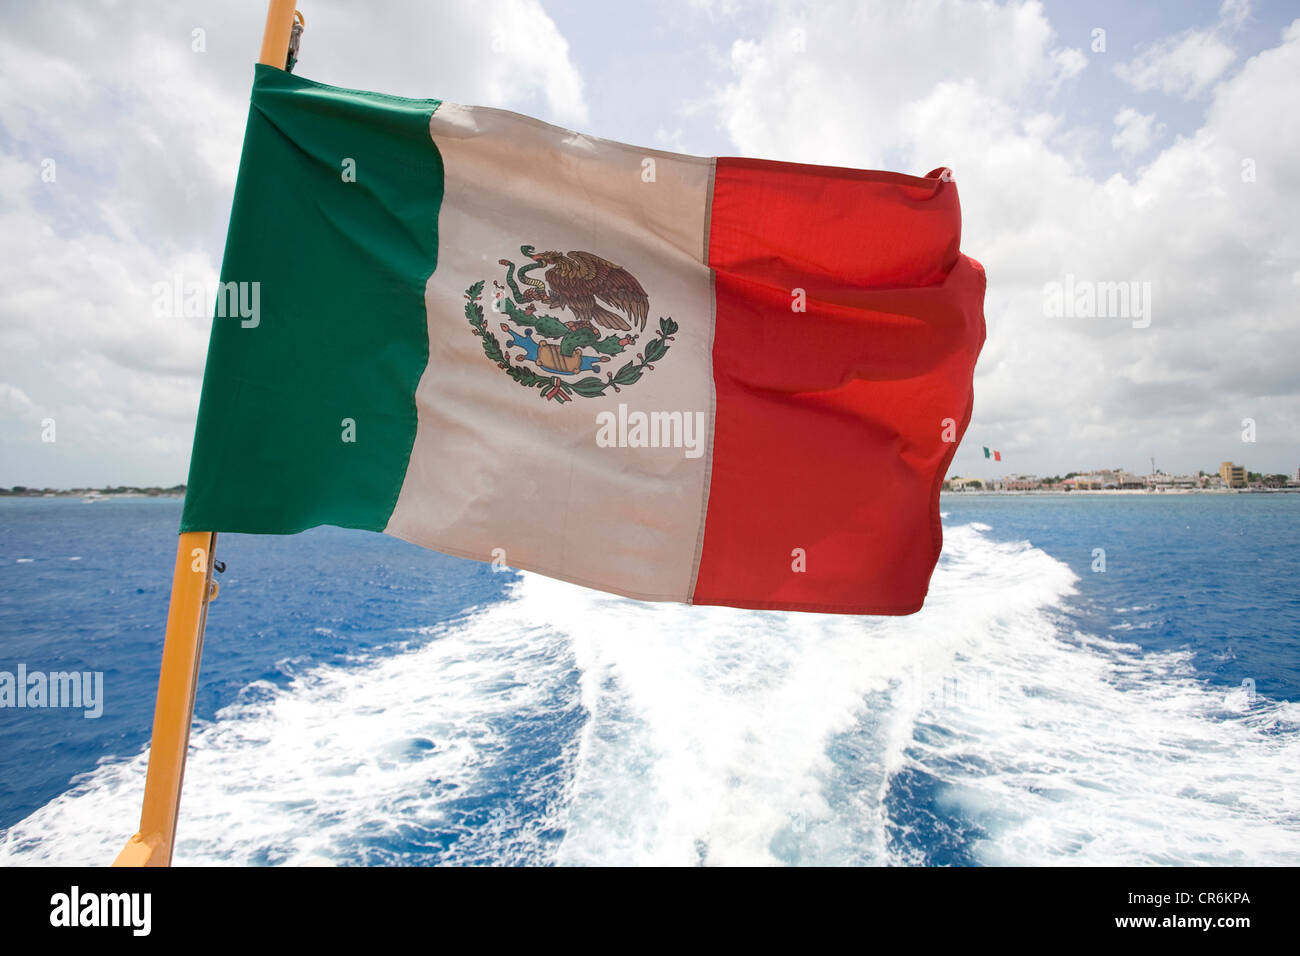 National flag of Mexico on a ferry, Cozumel, Mexico, Caribbean - Stock Image